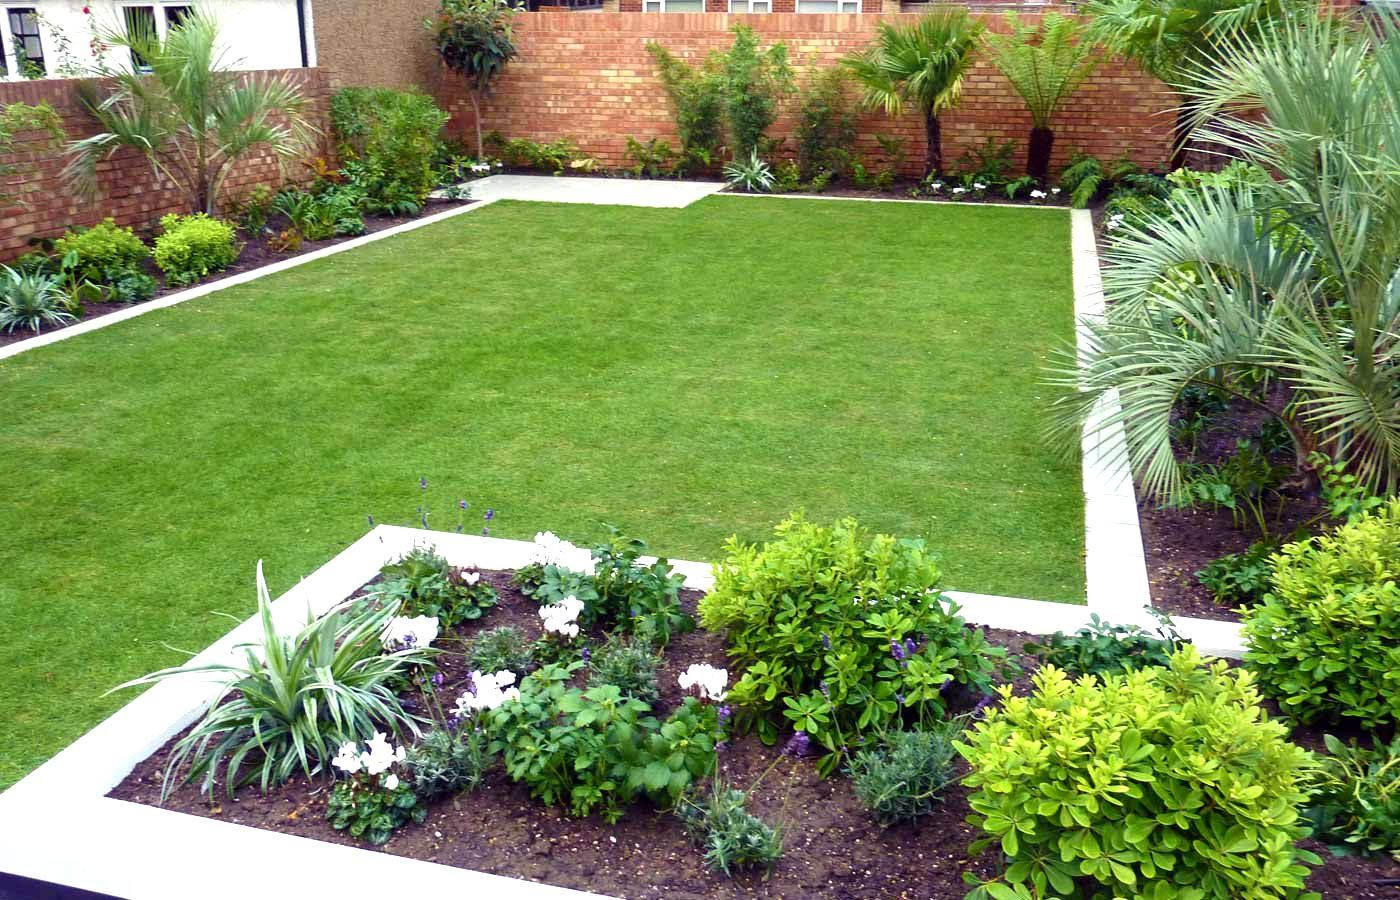 Simple garden designs no fret small garden design for Garden landscaping ideas